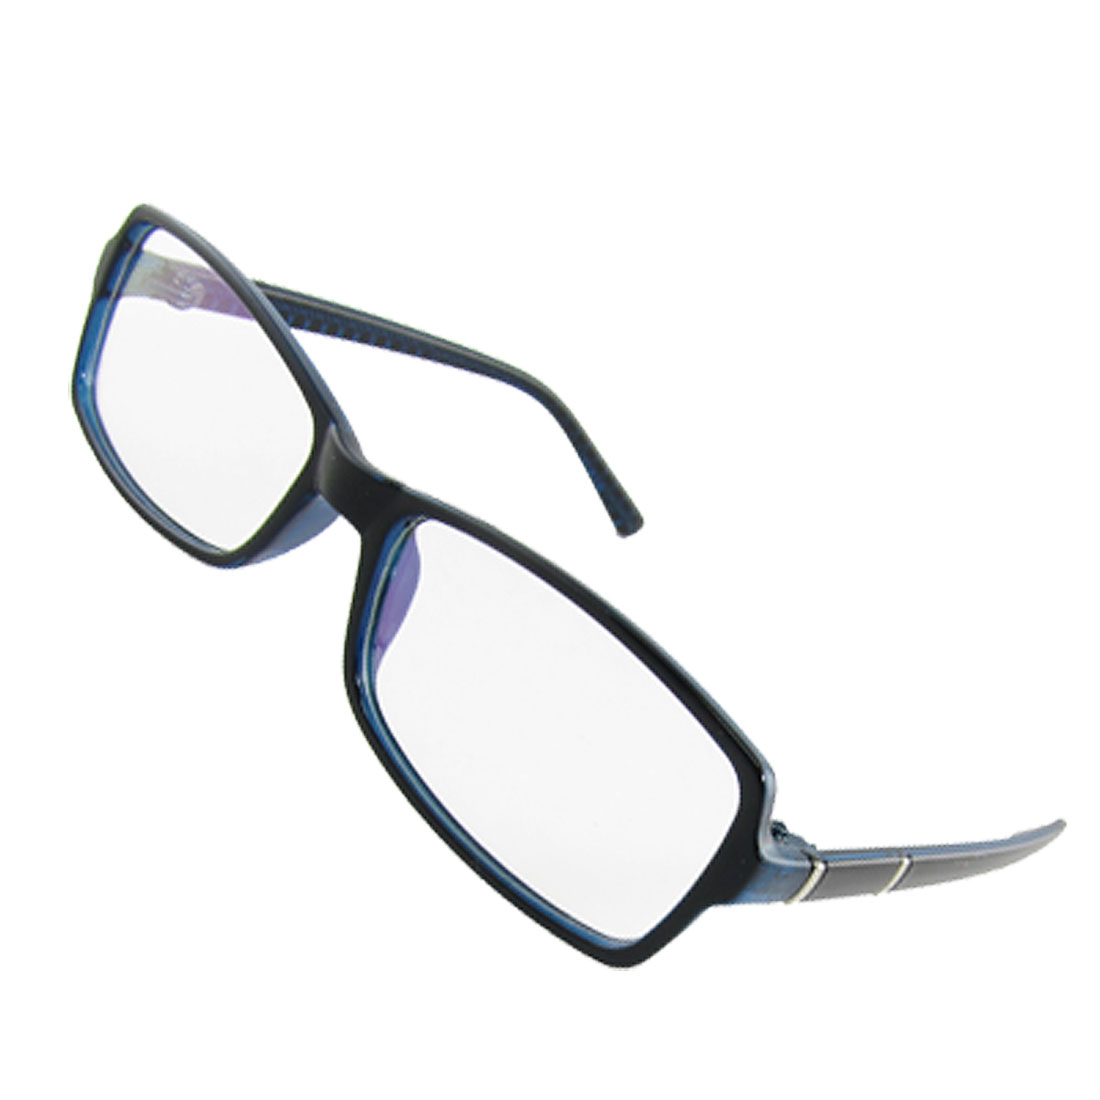 Dark Blue Plastic Frame Multi-coated Lens Plano Eyeglasses Eyewear